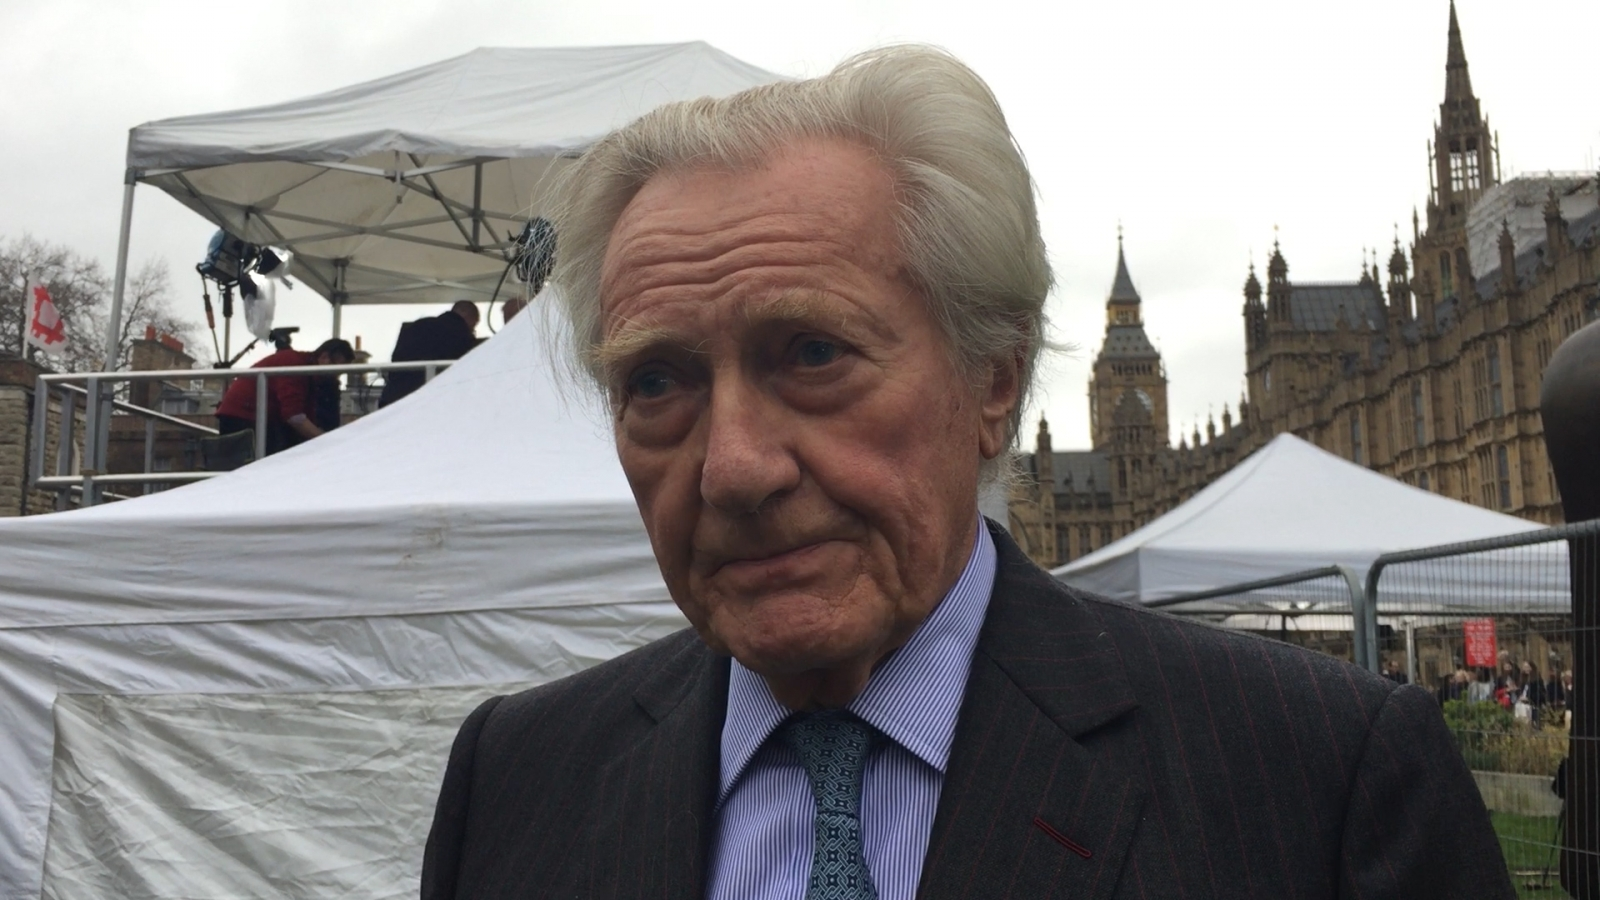 Lord Michael Heseltine on Brexit Day